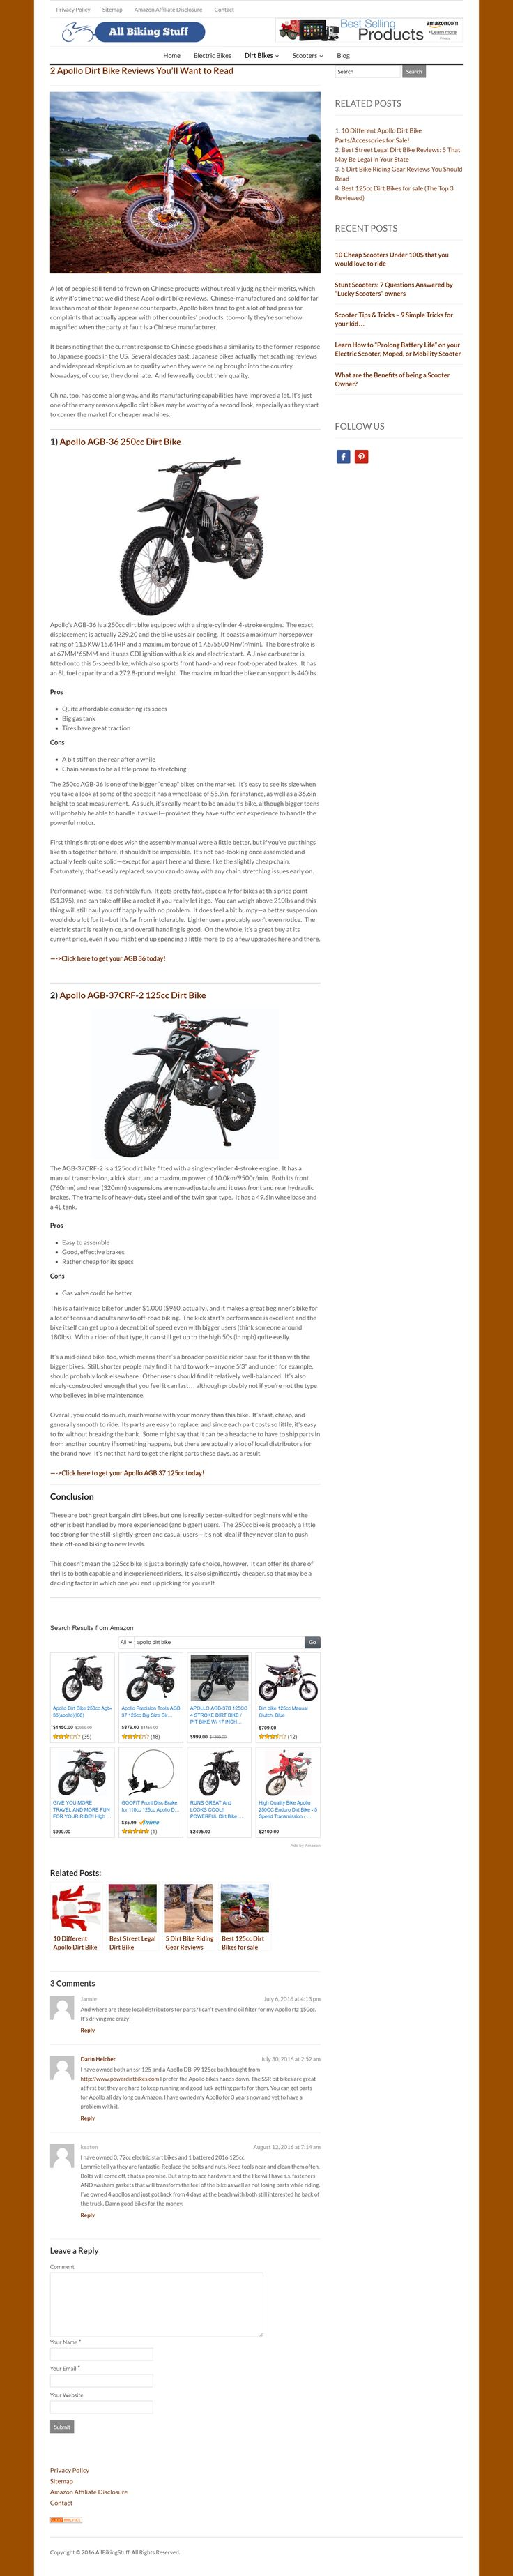 Apollo dirt bikes: 2 models compared and reviewed.